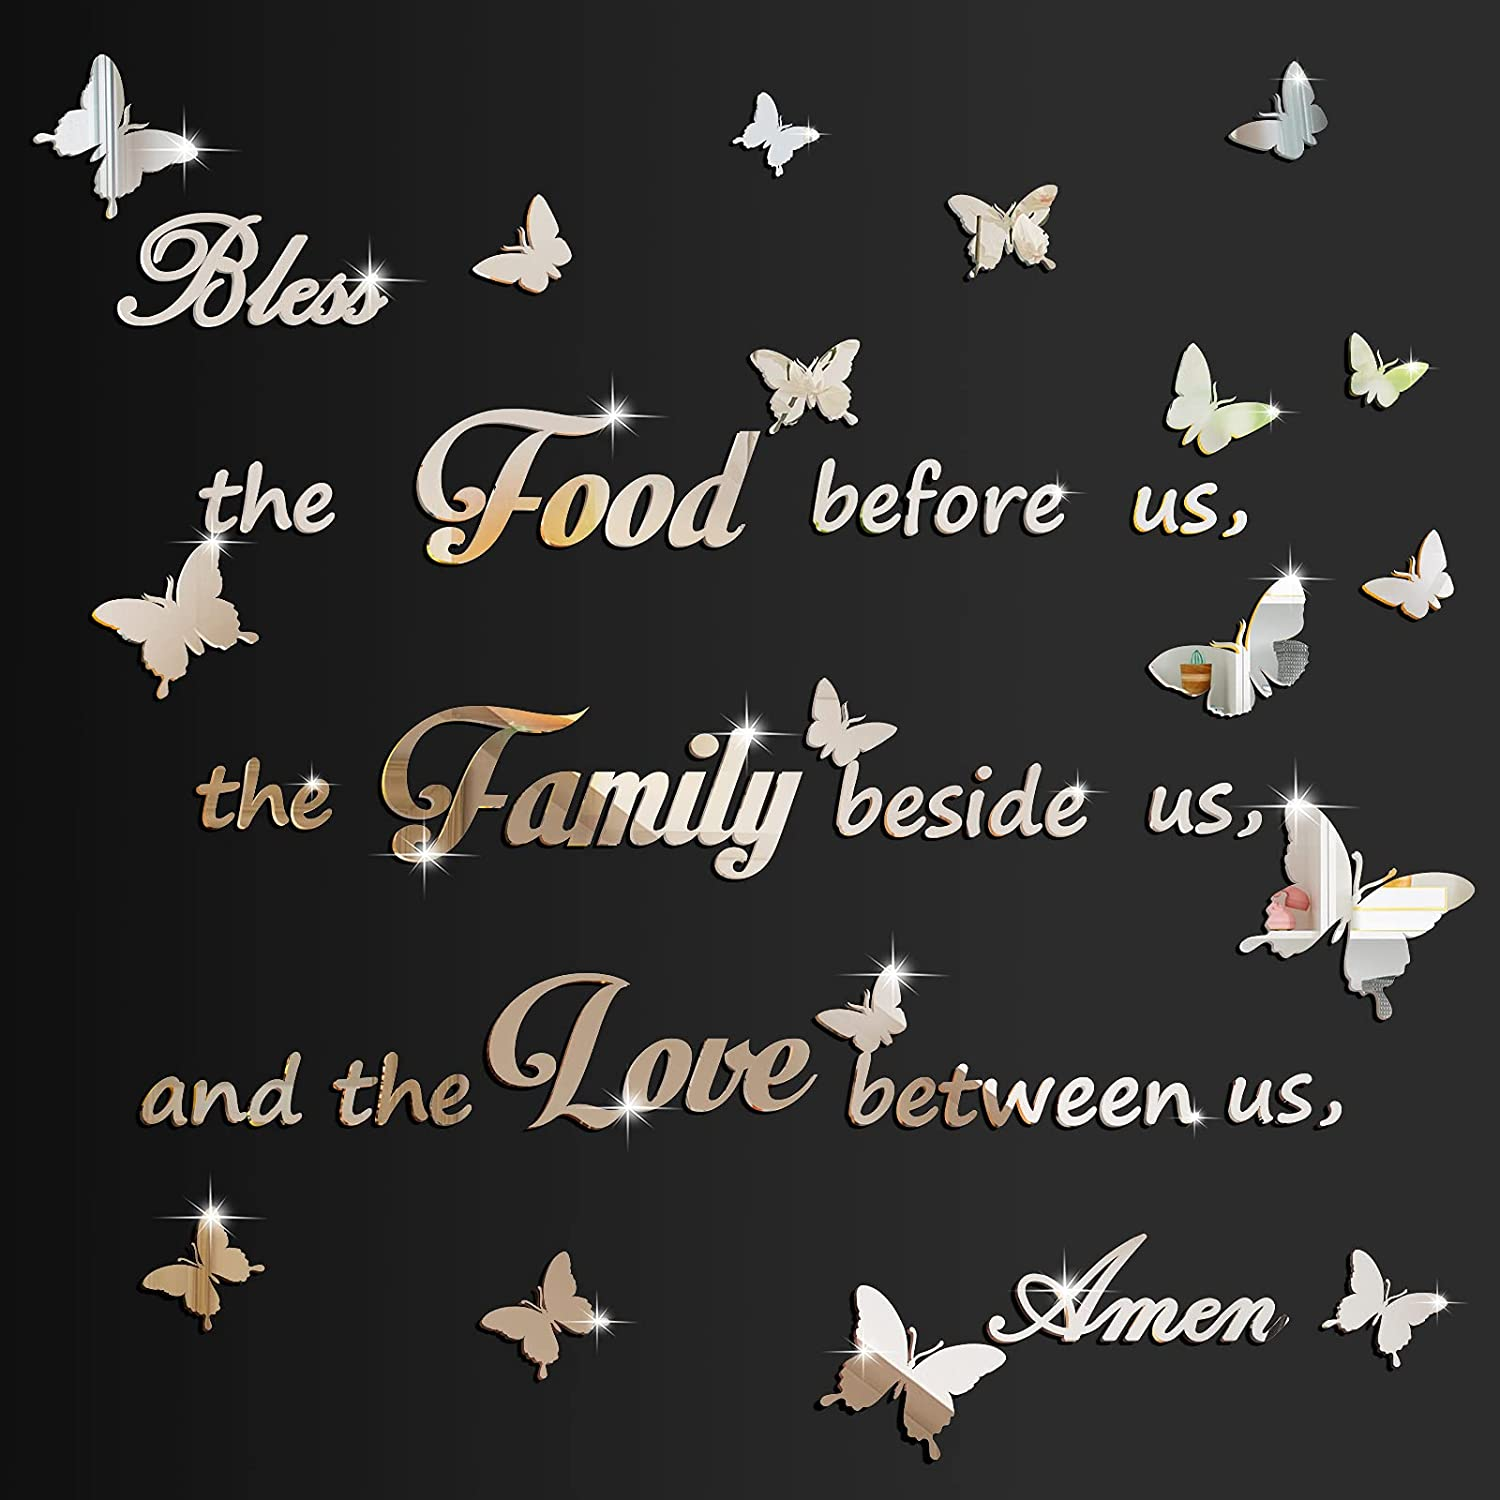 2 Pieces 3D Acrylic Dinner Prayer Mirror Wall Stickers Kitchen Wall Decals Bless The Food Before Us Mirror Wall Stickers Home Decorations for Kitchen Dining Room, Silver